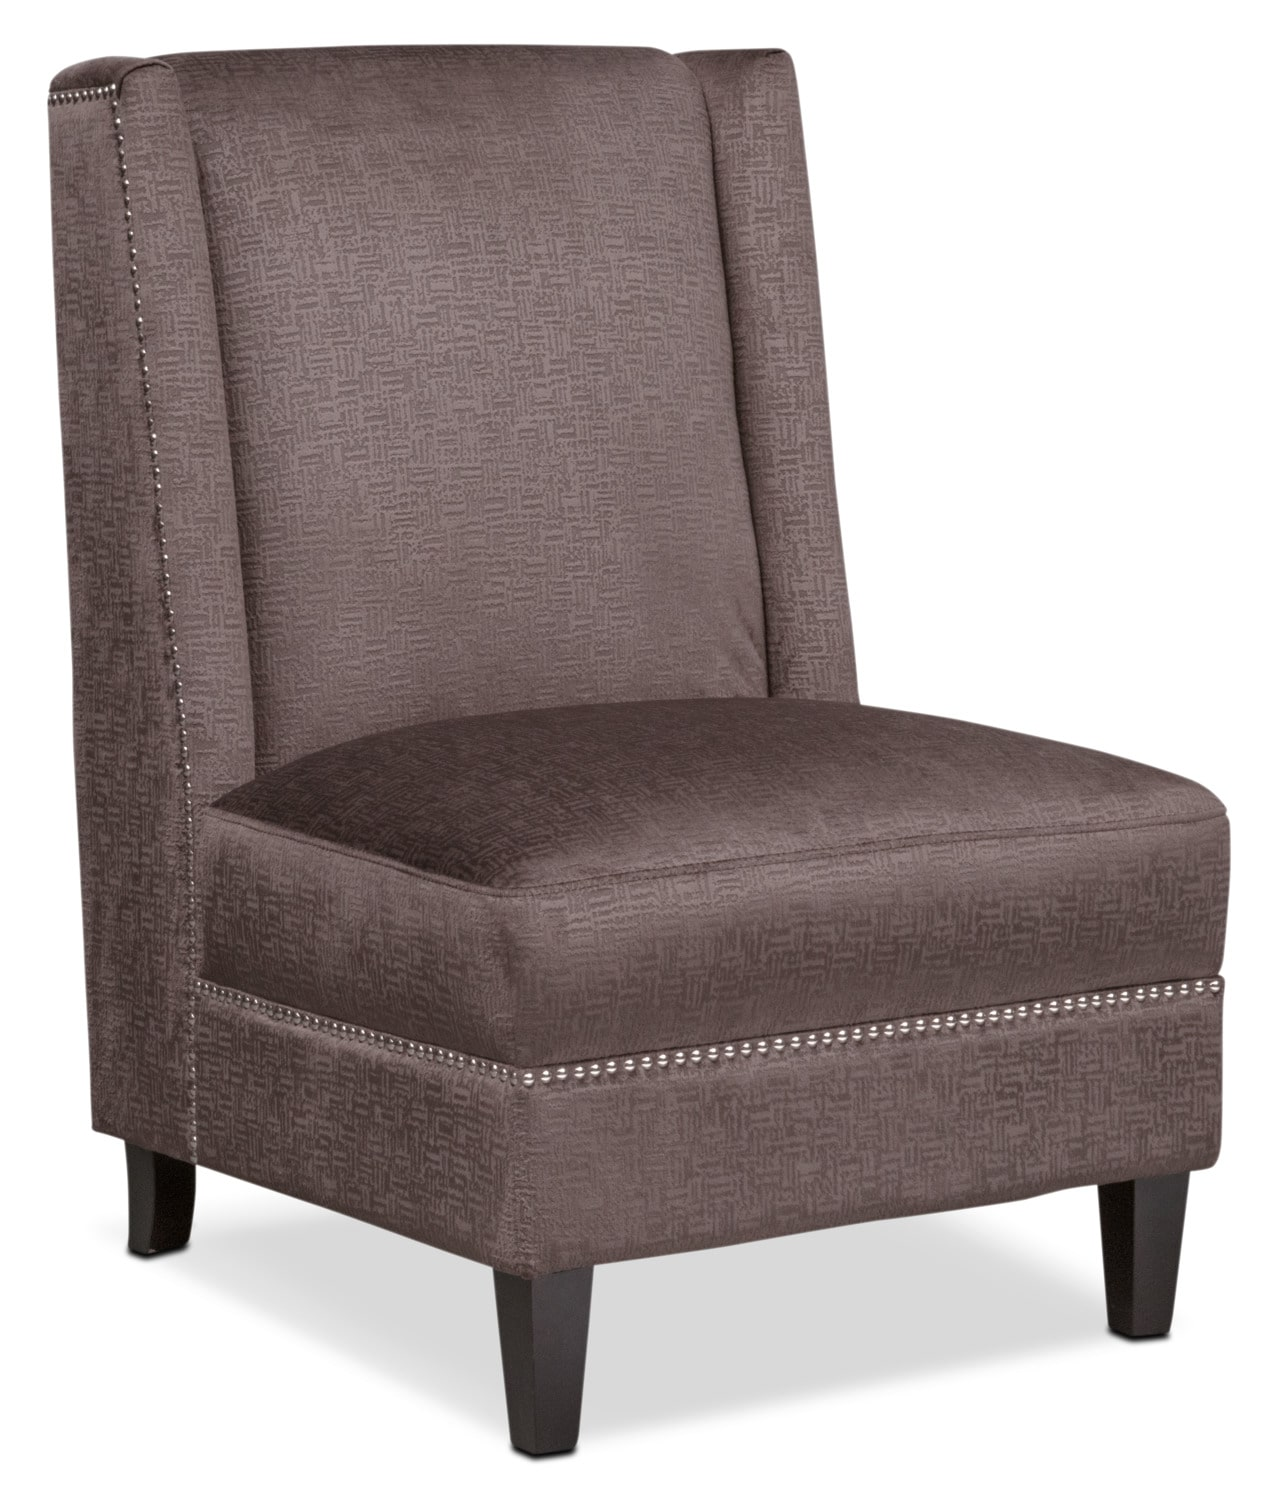 Brown Accent Chairs Roberto Accent Chair Brown Value City Furniture And